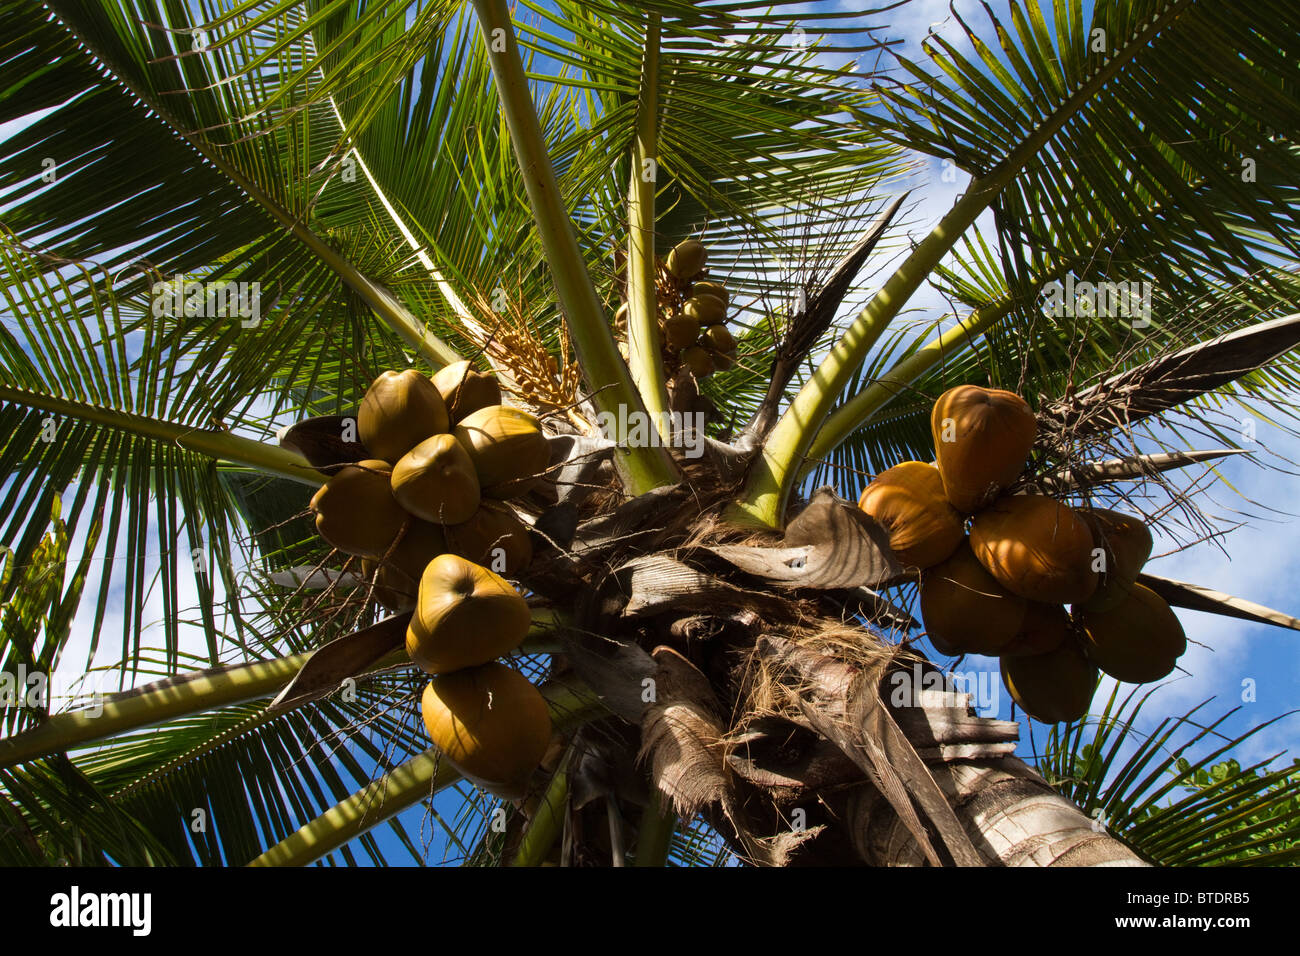 Coconut palm viewed from below - Stock Image